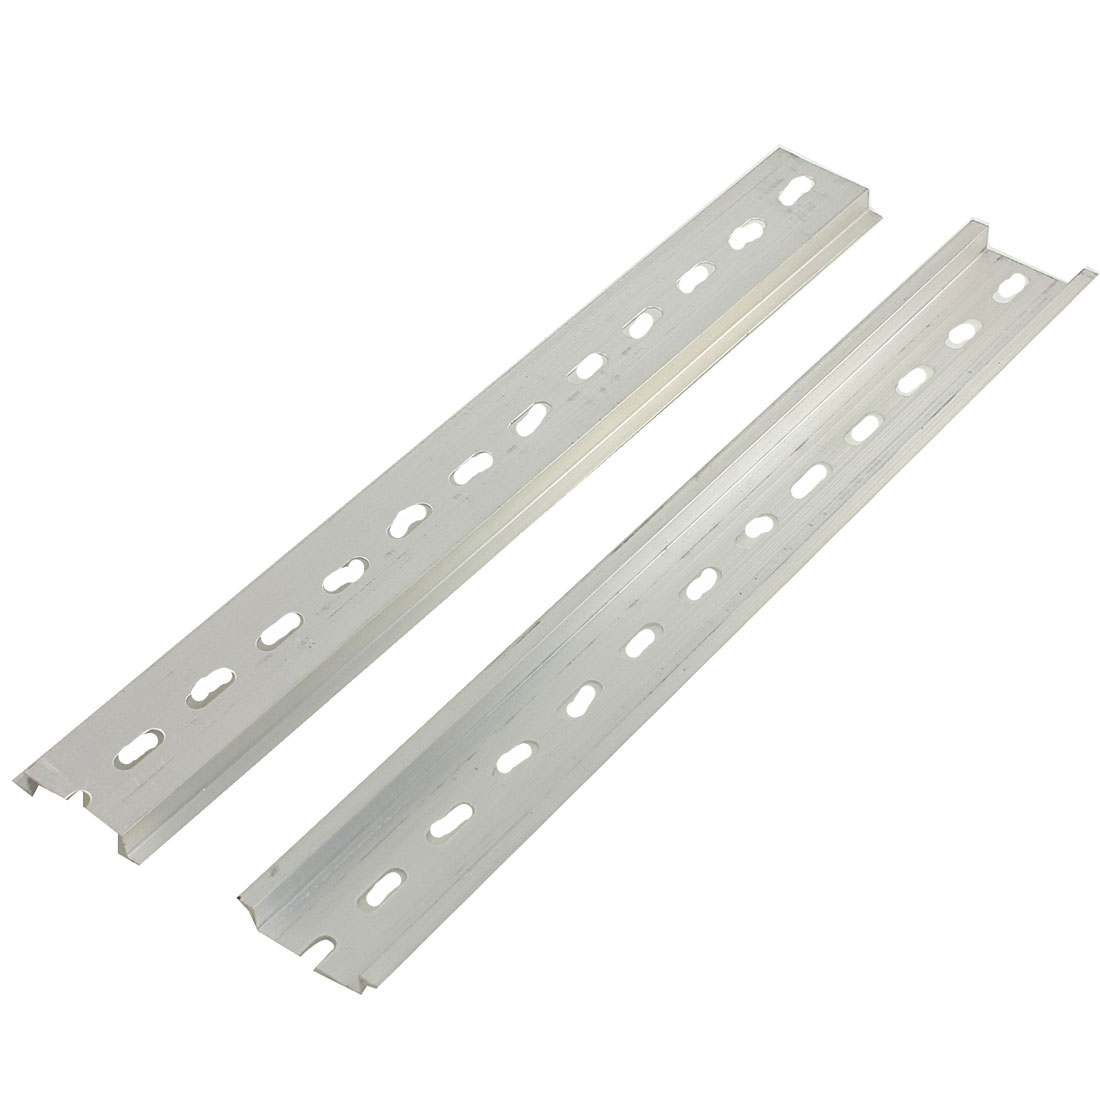 15 Pcs 35mm Width Slotted Design Aluminum DIN Rail 250mm 9.8""